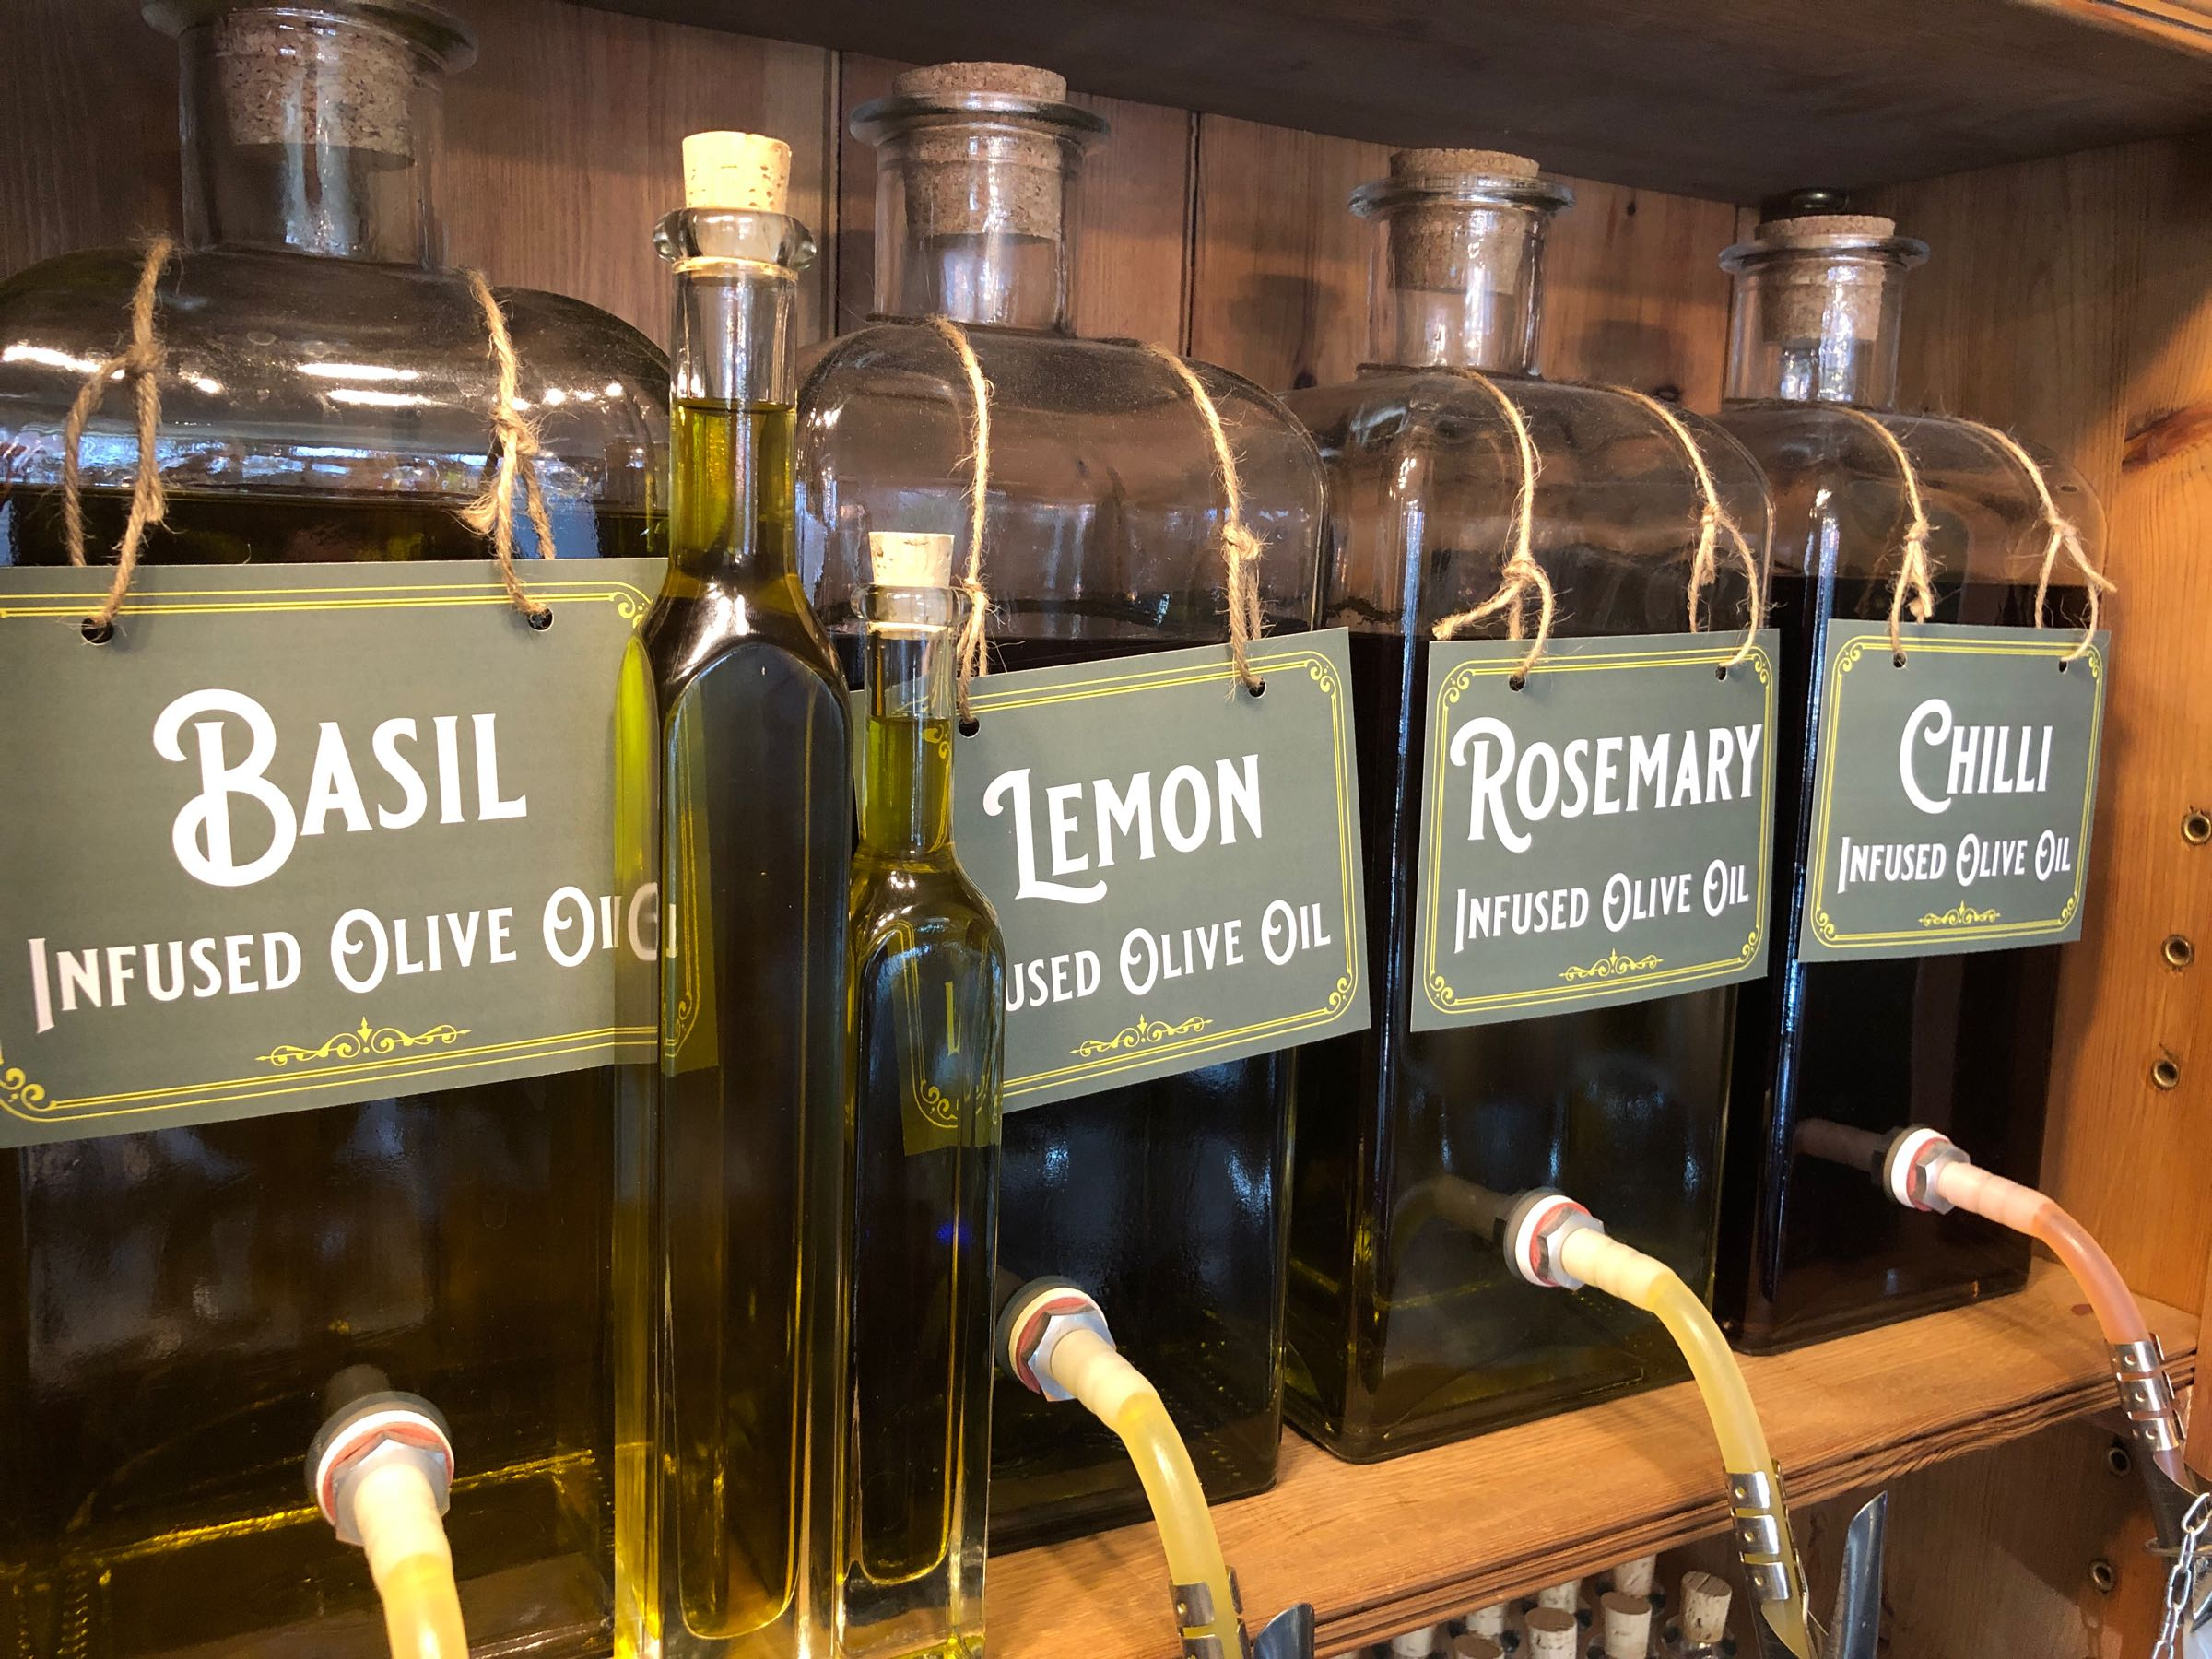 Infused Oil (Chilli, Lemon, Rosemary or Basil)